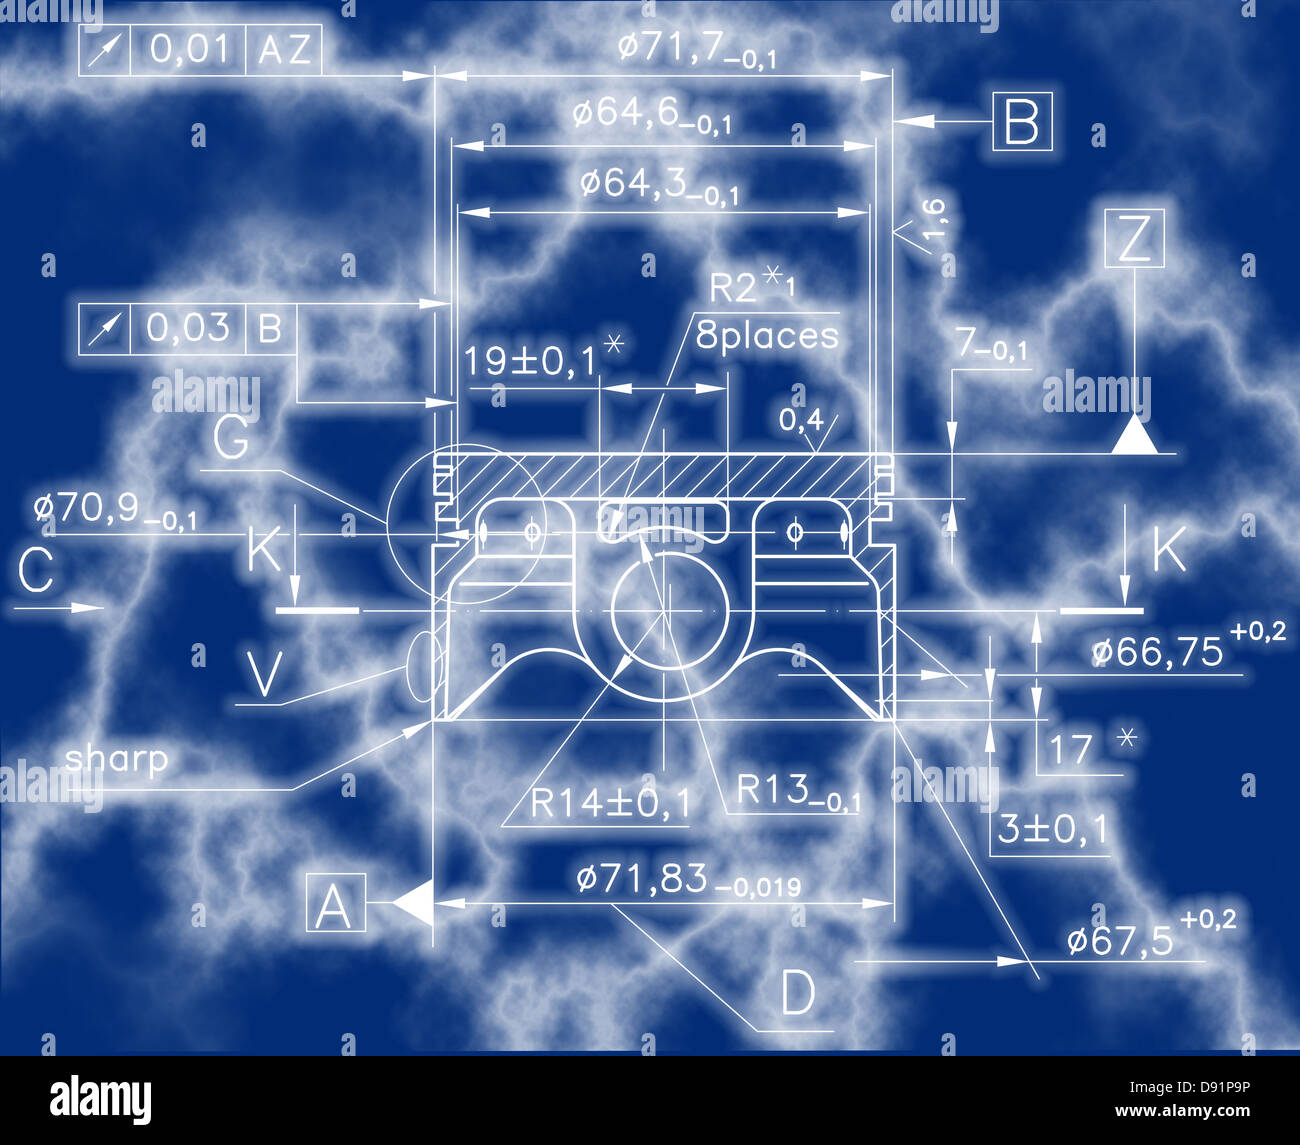 Internal Combustion Engine Diagram Stock Photos Design Drawings Of Nonexistent Piston Clipping Path Image